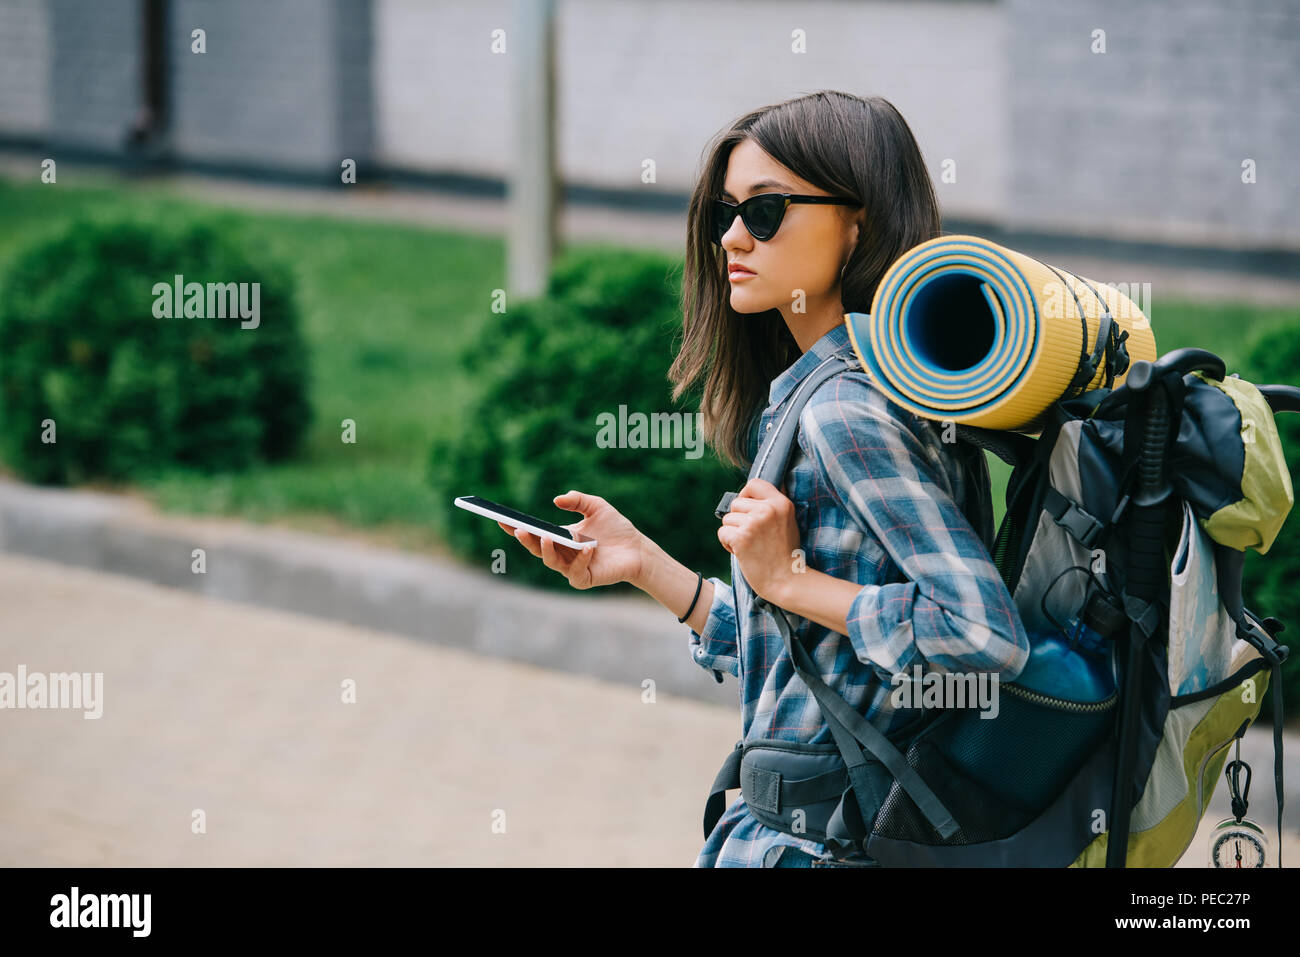 young female backpacker in sunglasses holding smartphone - Stock Image